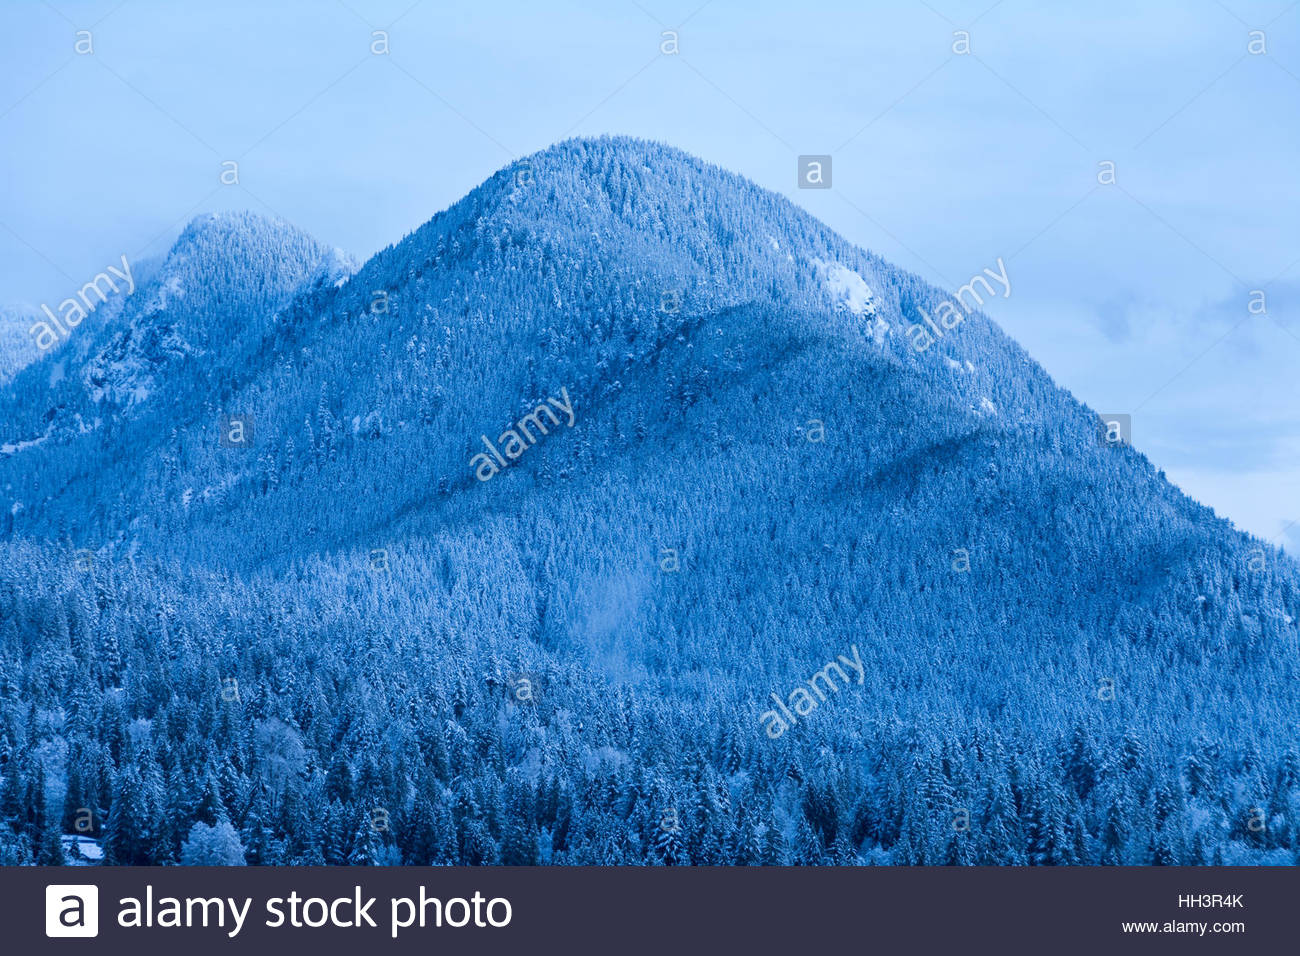 View of Lynn Peak and trees of Lynn Valley dusted with snow as seen at twilight, shortly before sunrise. - Stock Image